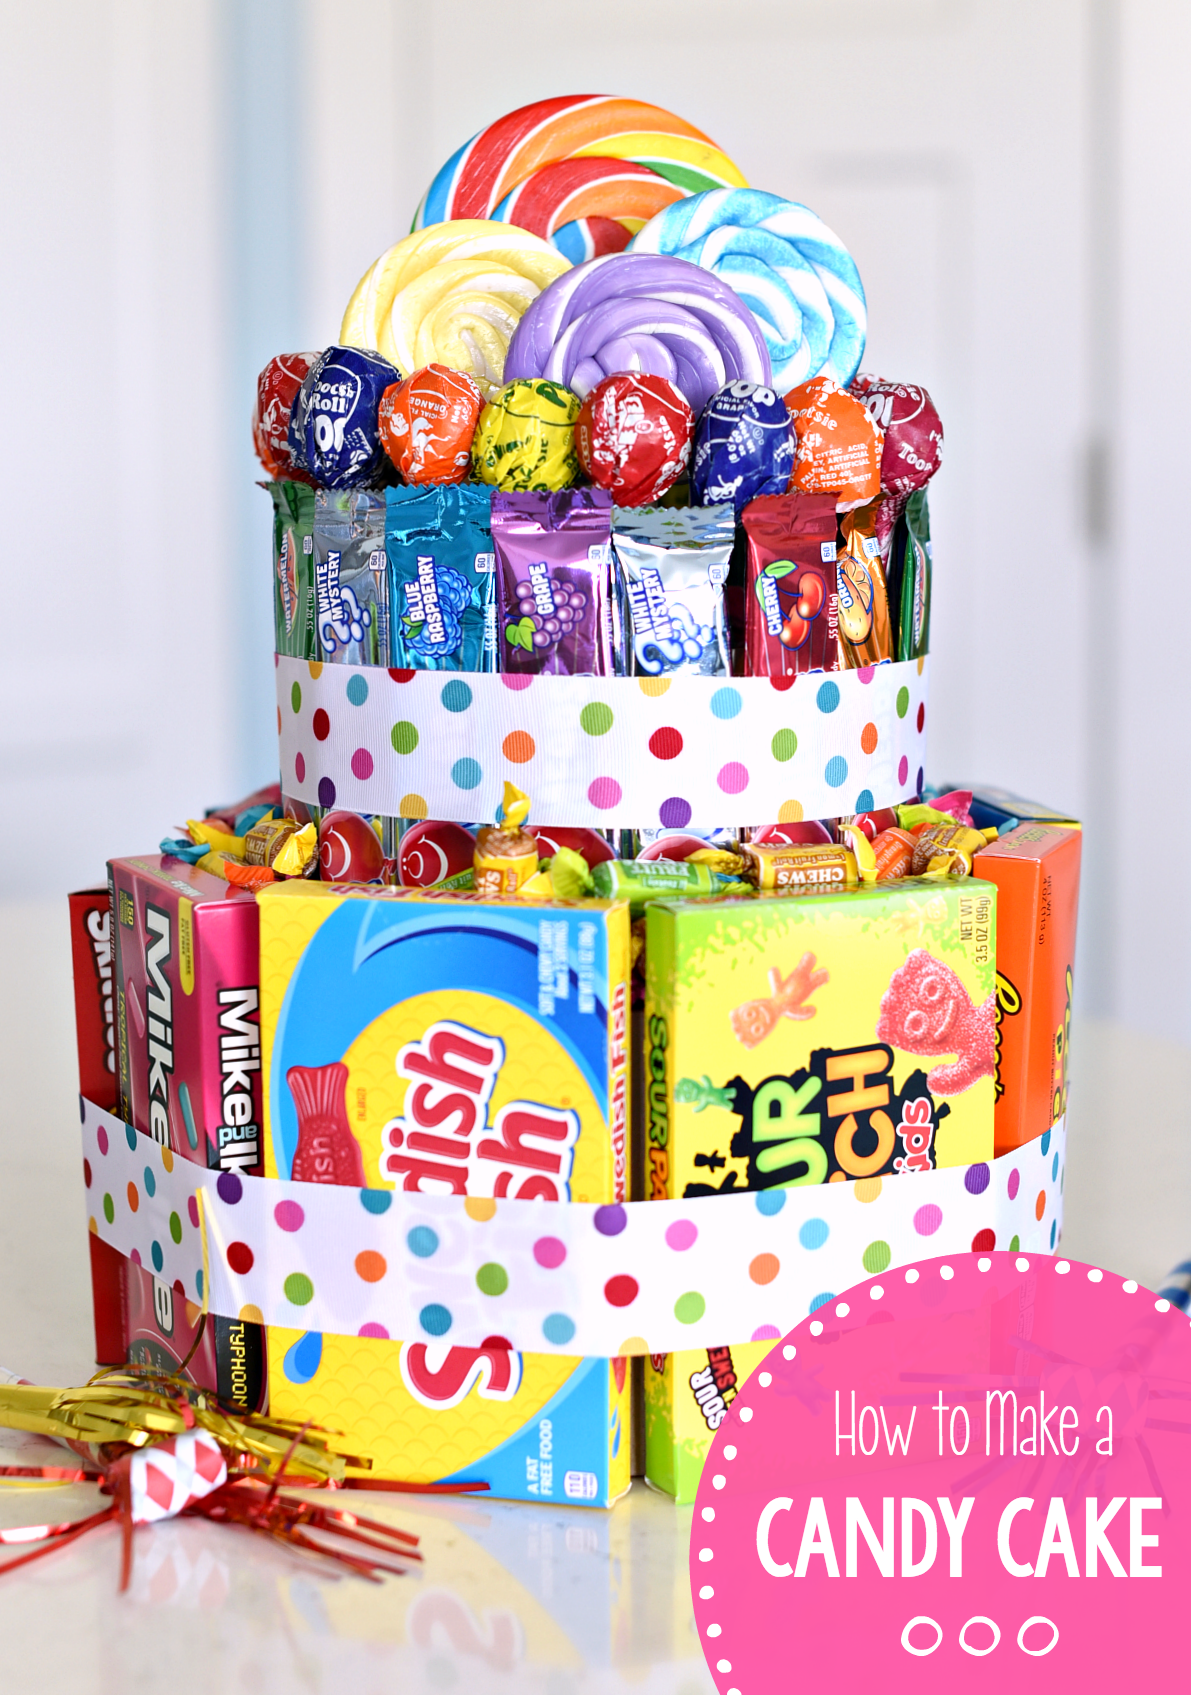 How to Make a Candy Cake